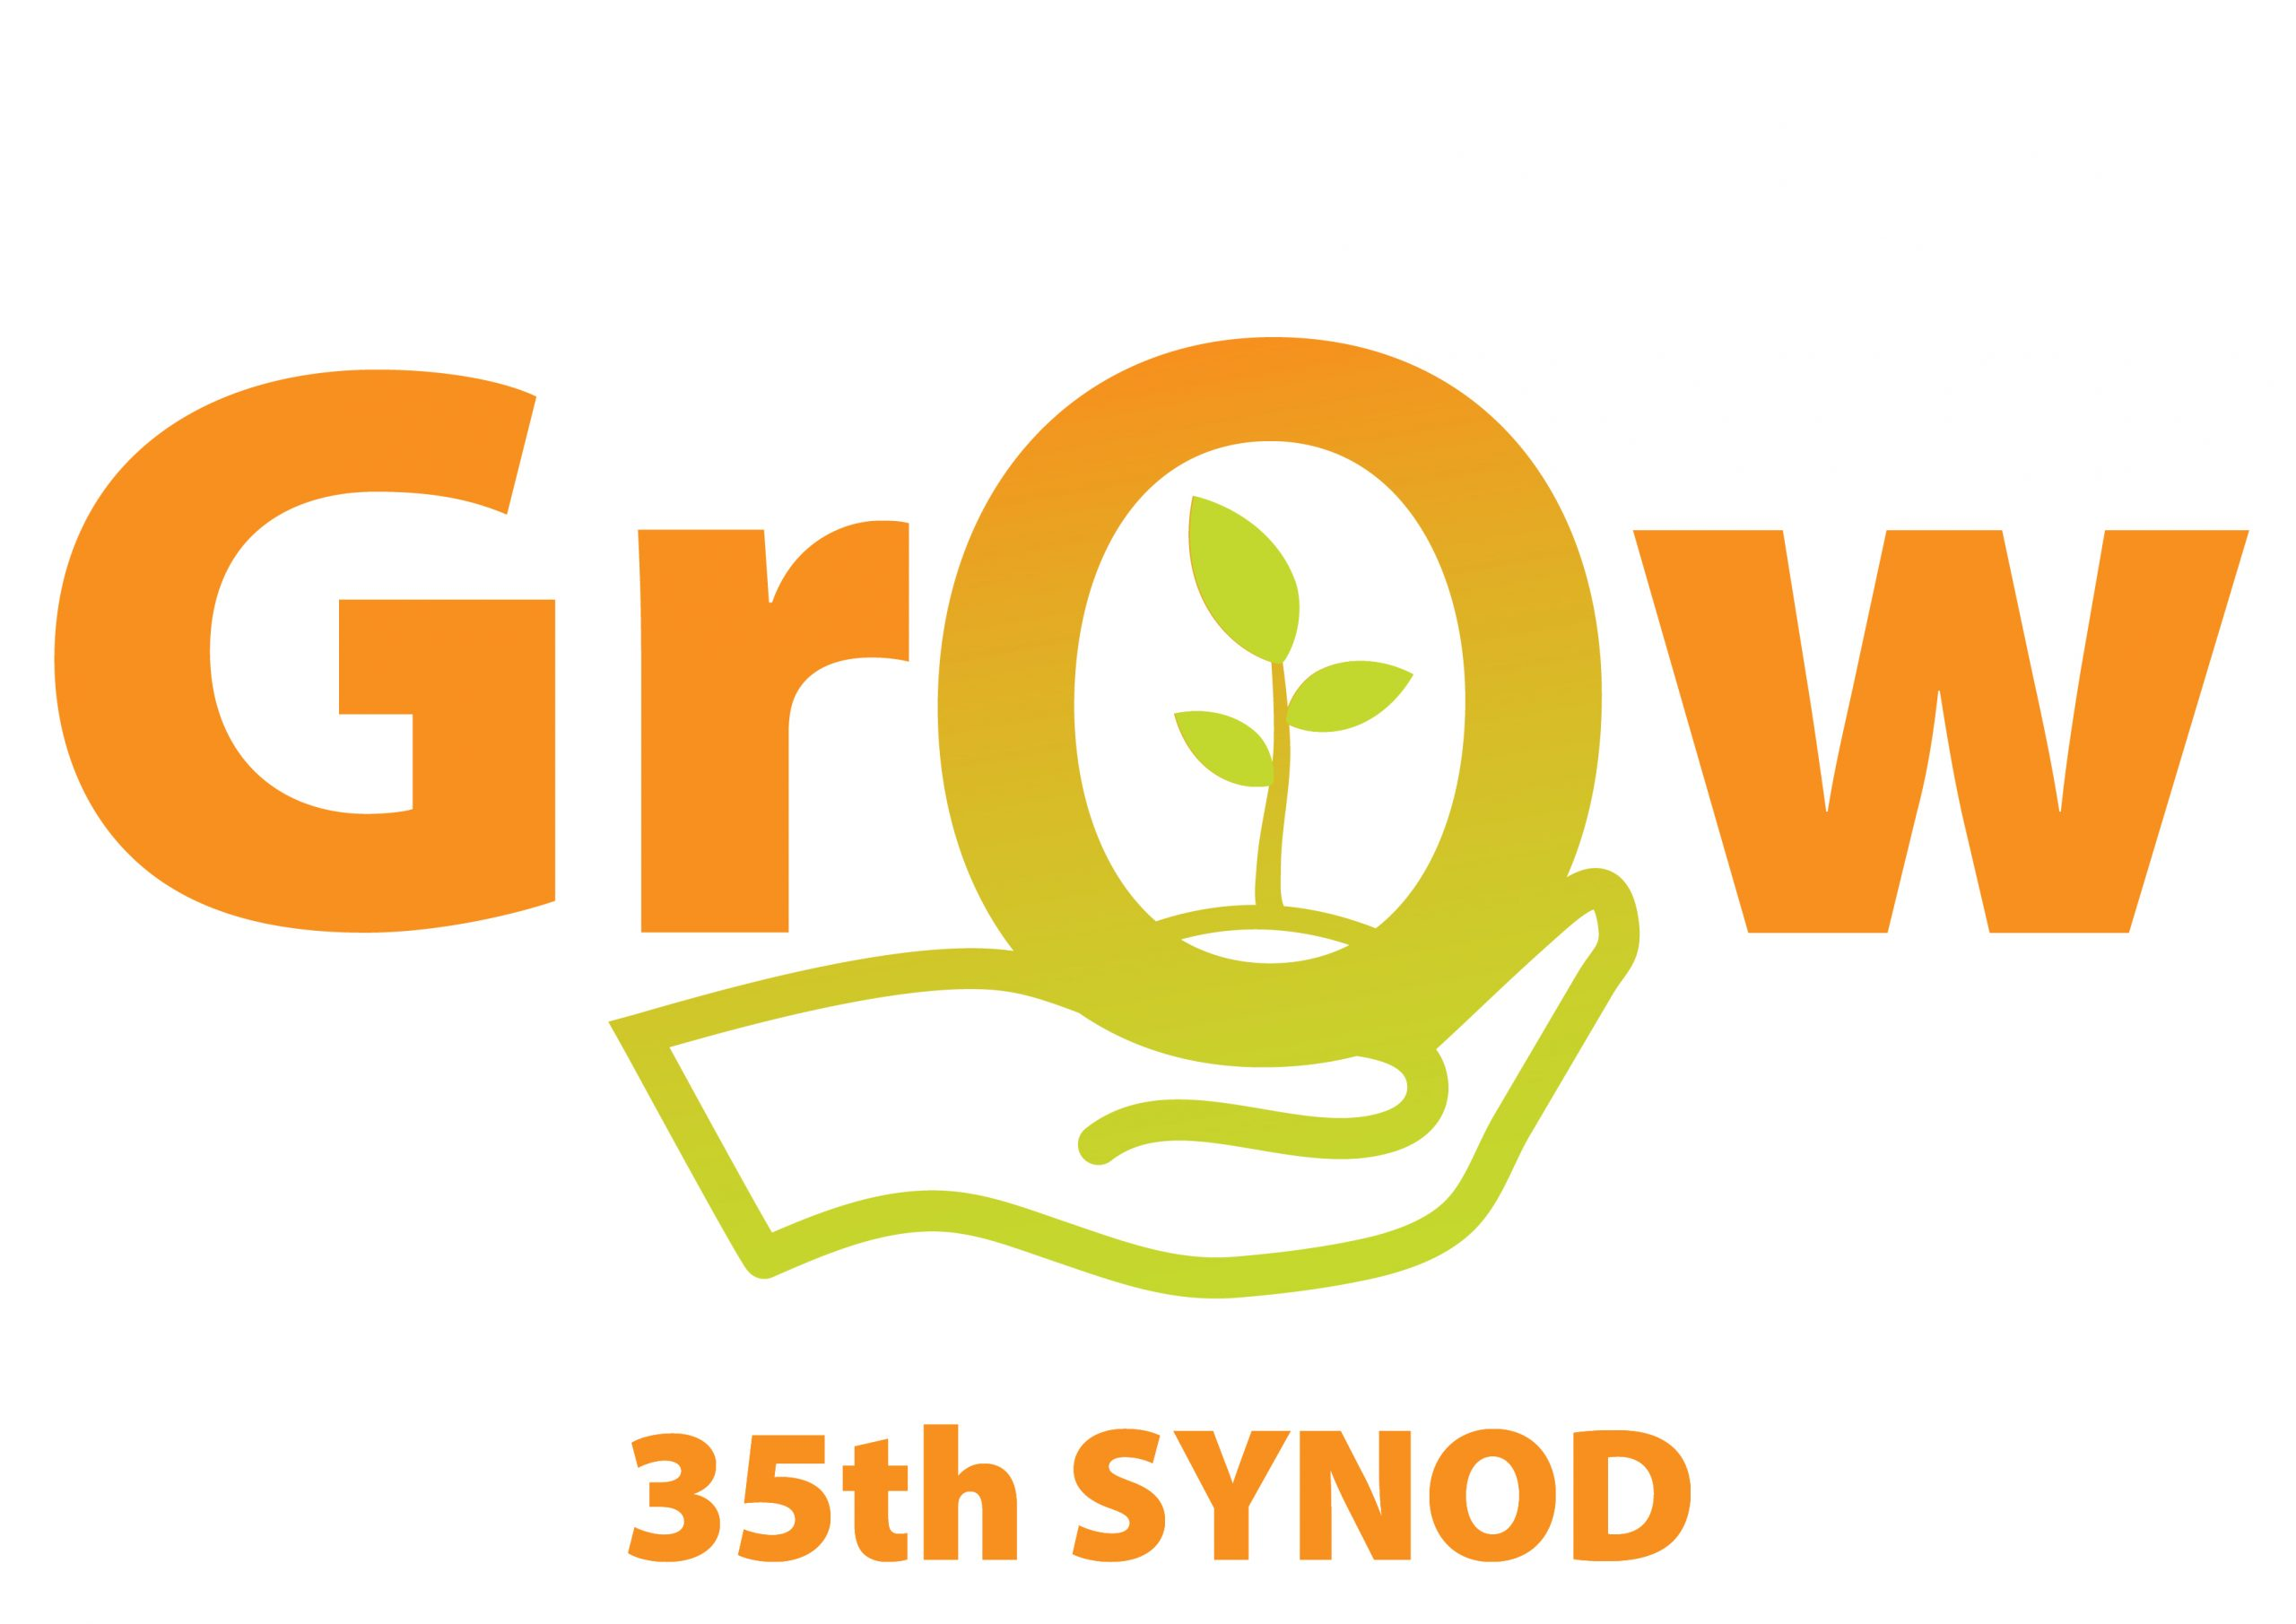 35th Synod grow logo